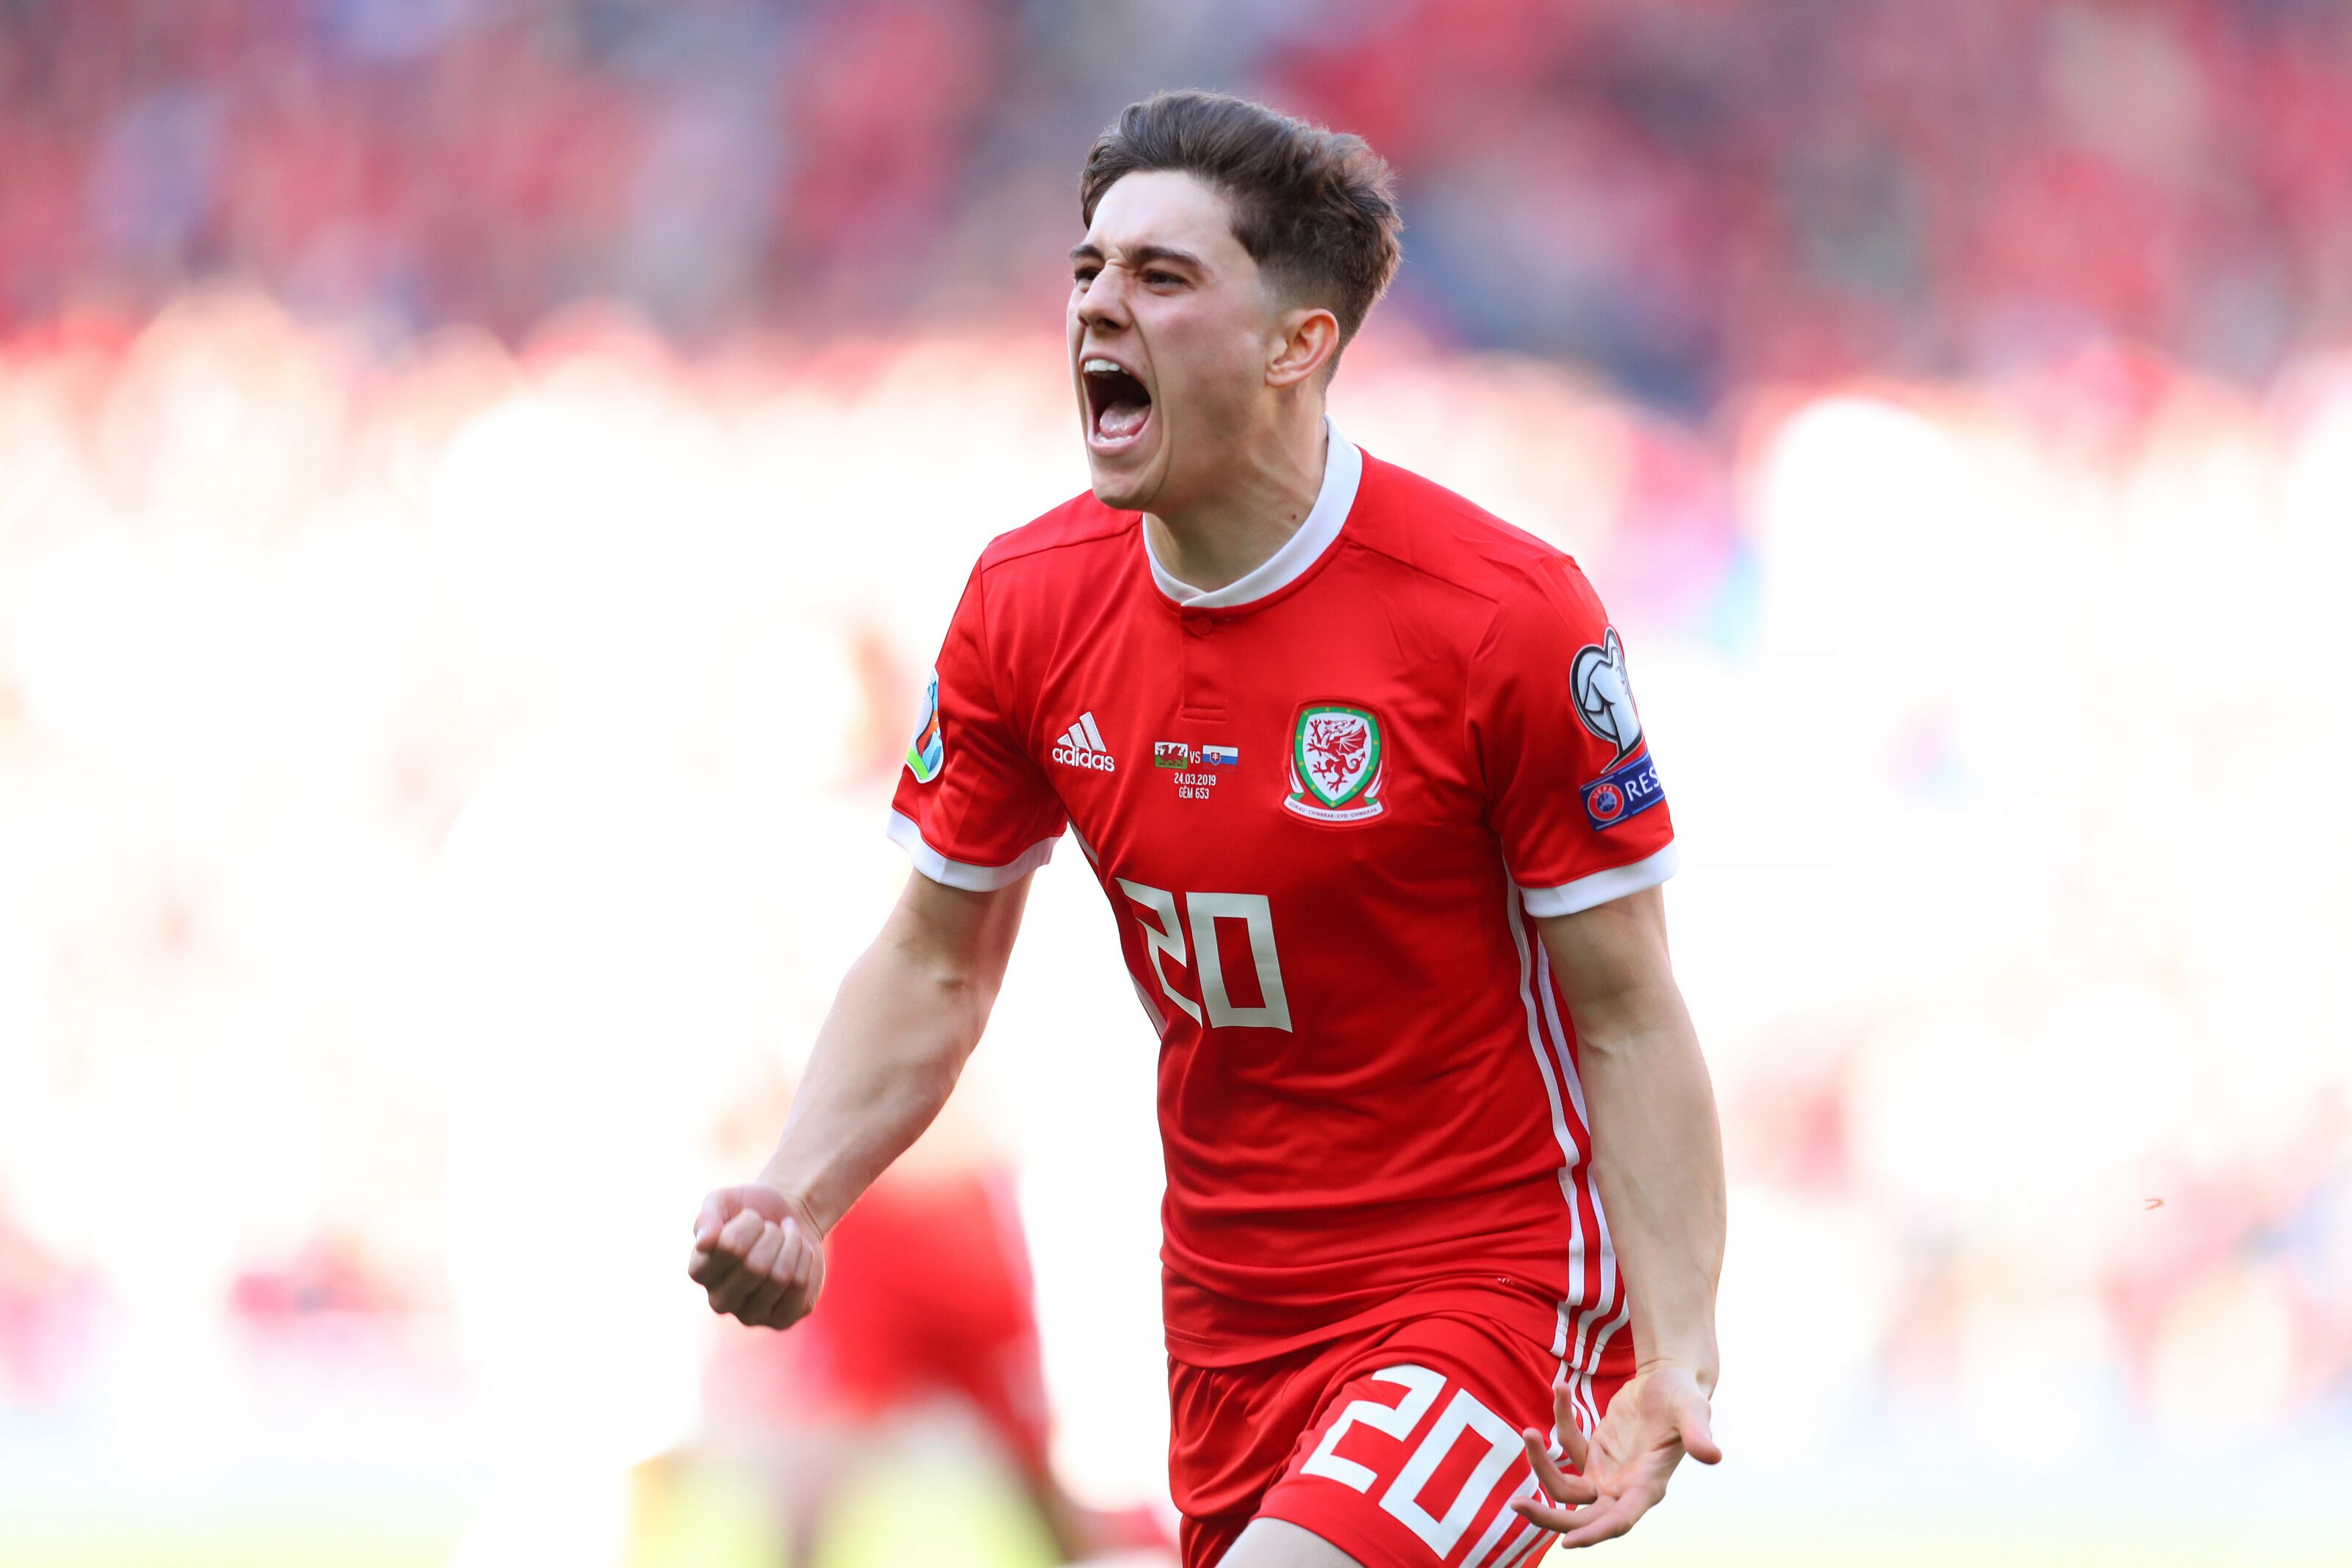 Why Daniel James is the right type of player Manchester United should target?